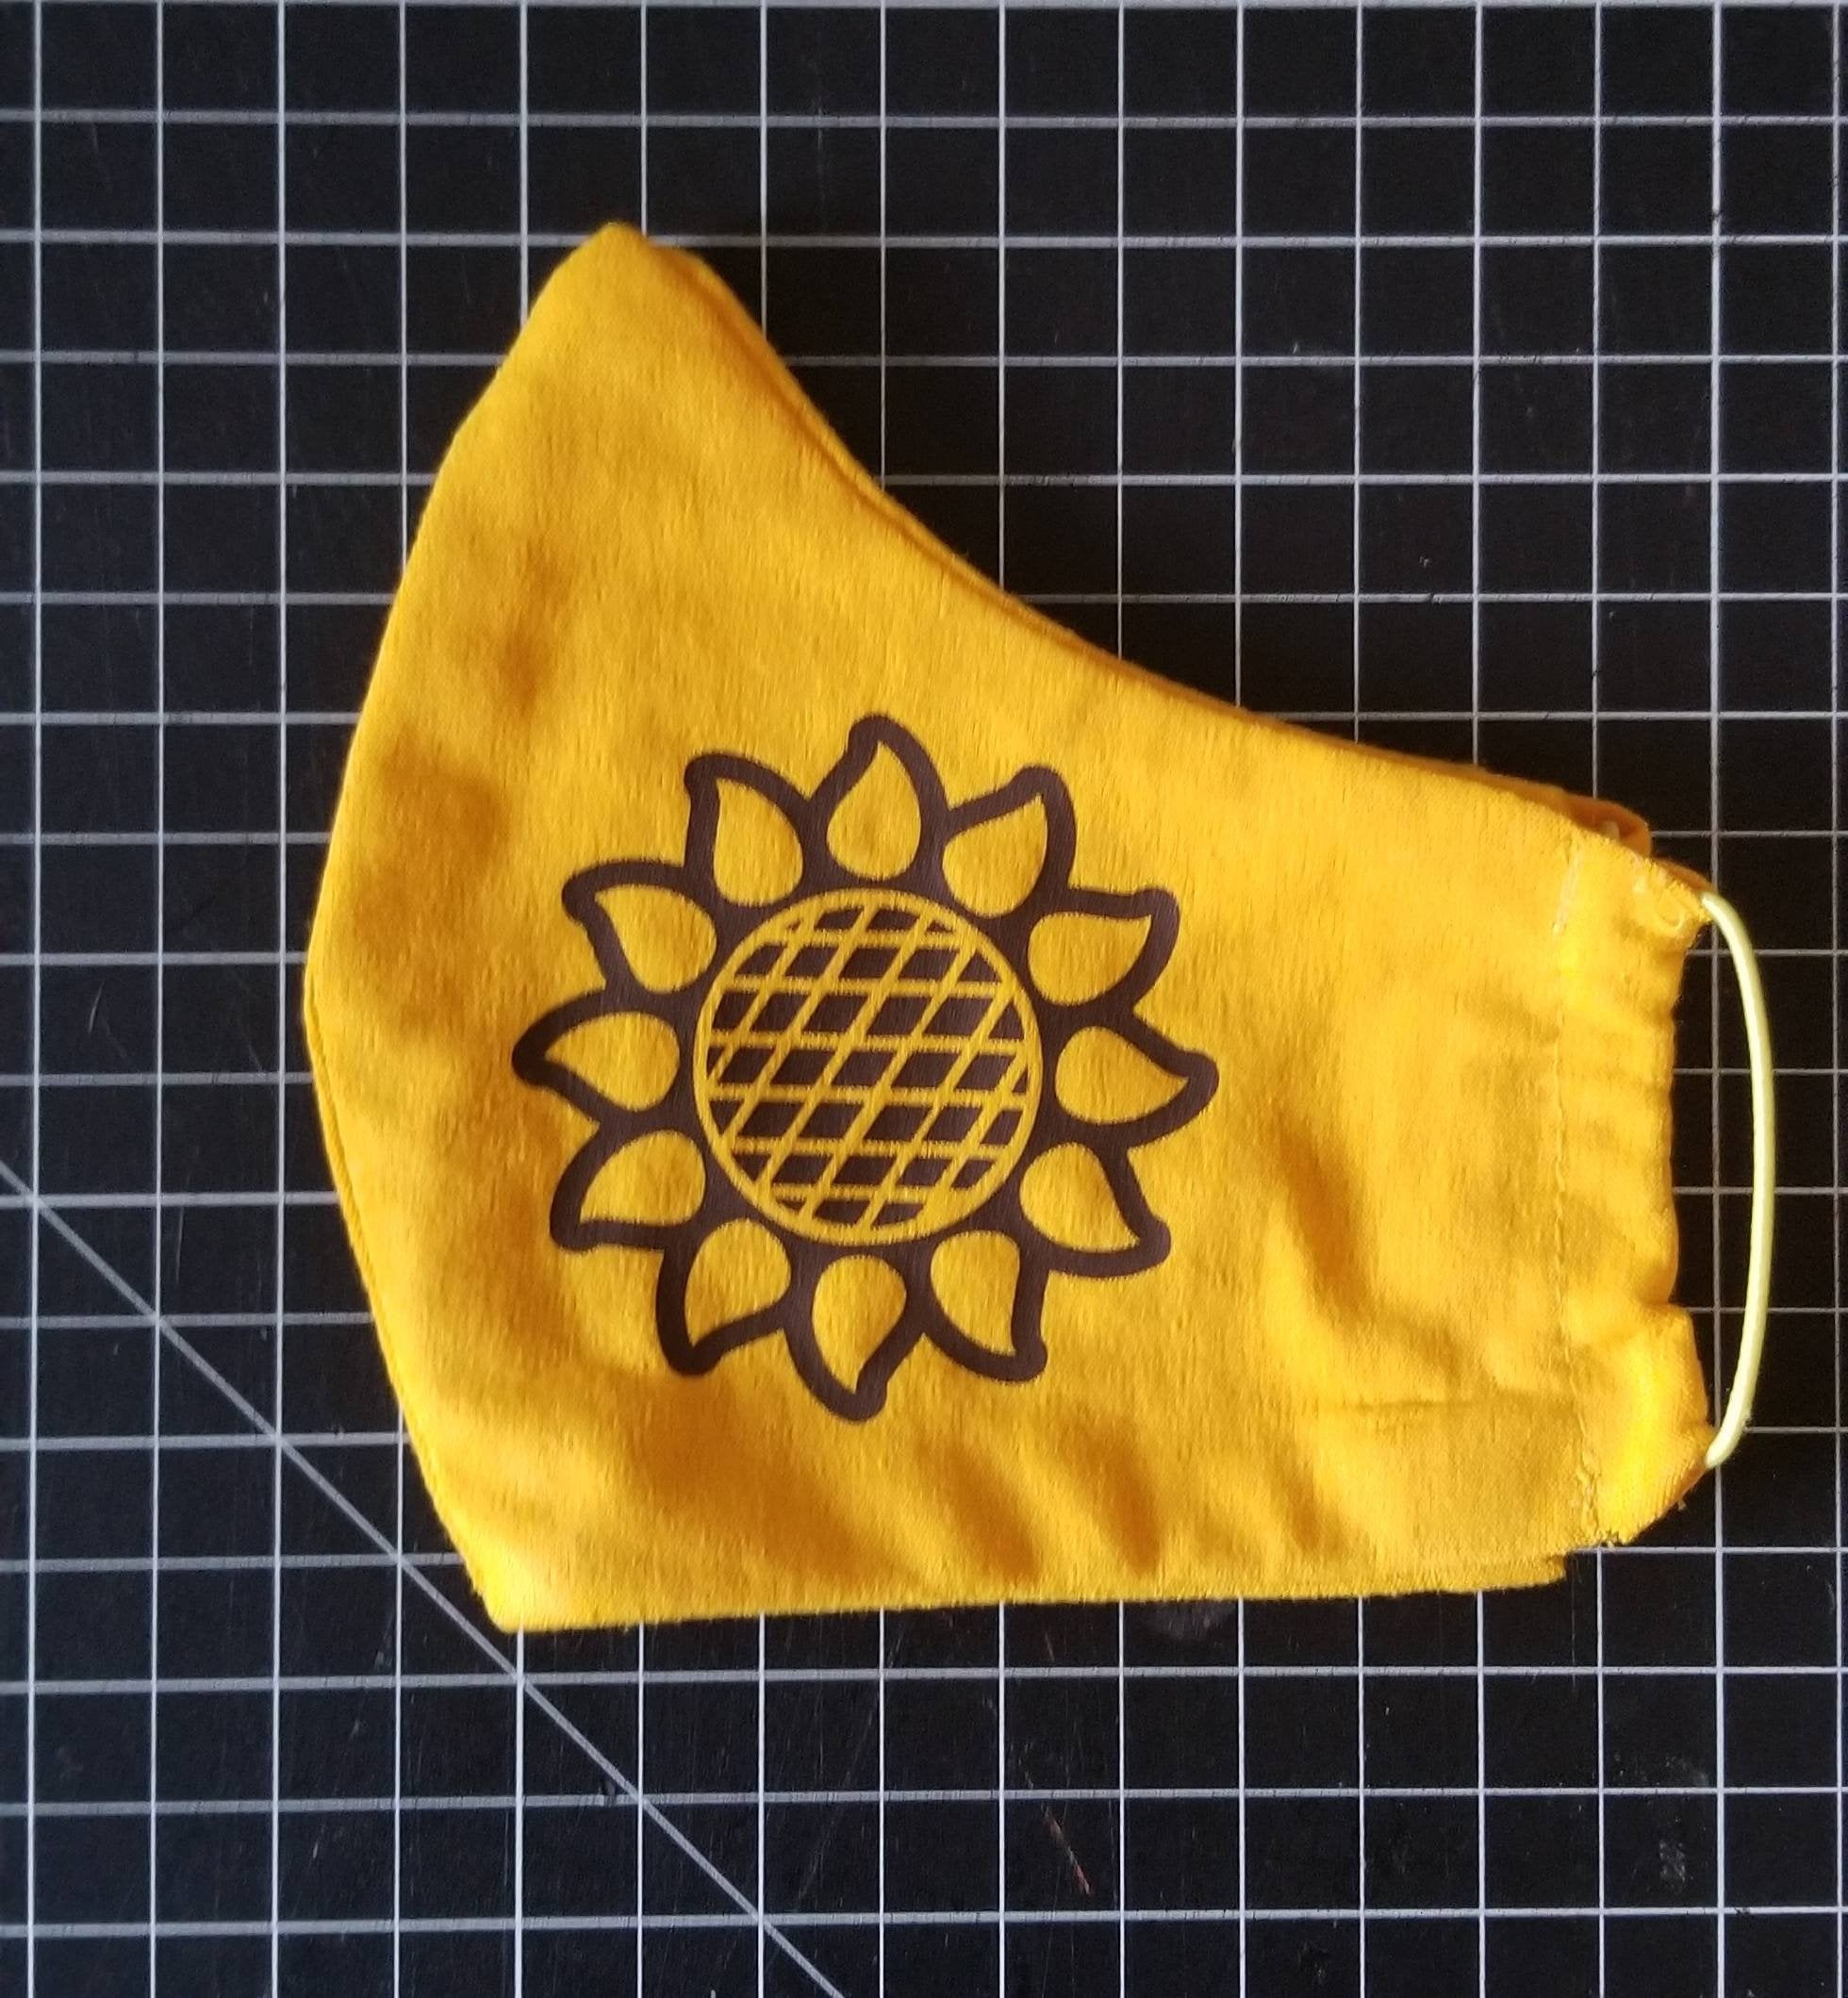 Floral Face Mask Sunflower Face Mask / Soft Yellow Jersey Cotton / Comfort Fit / Elastic Ear Bands Reusable Washable Breathable